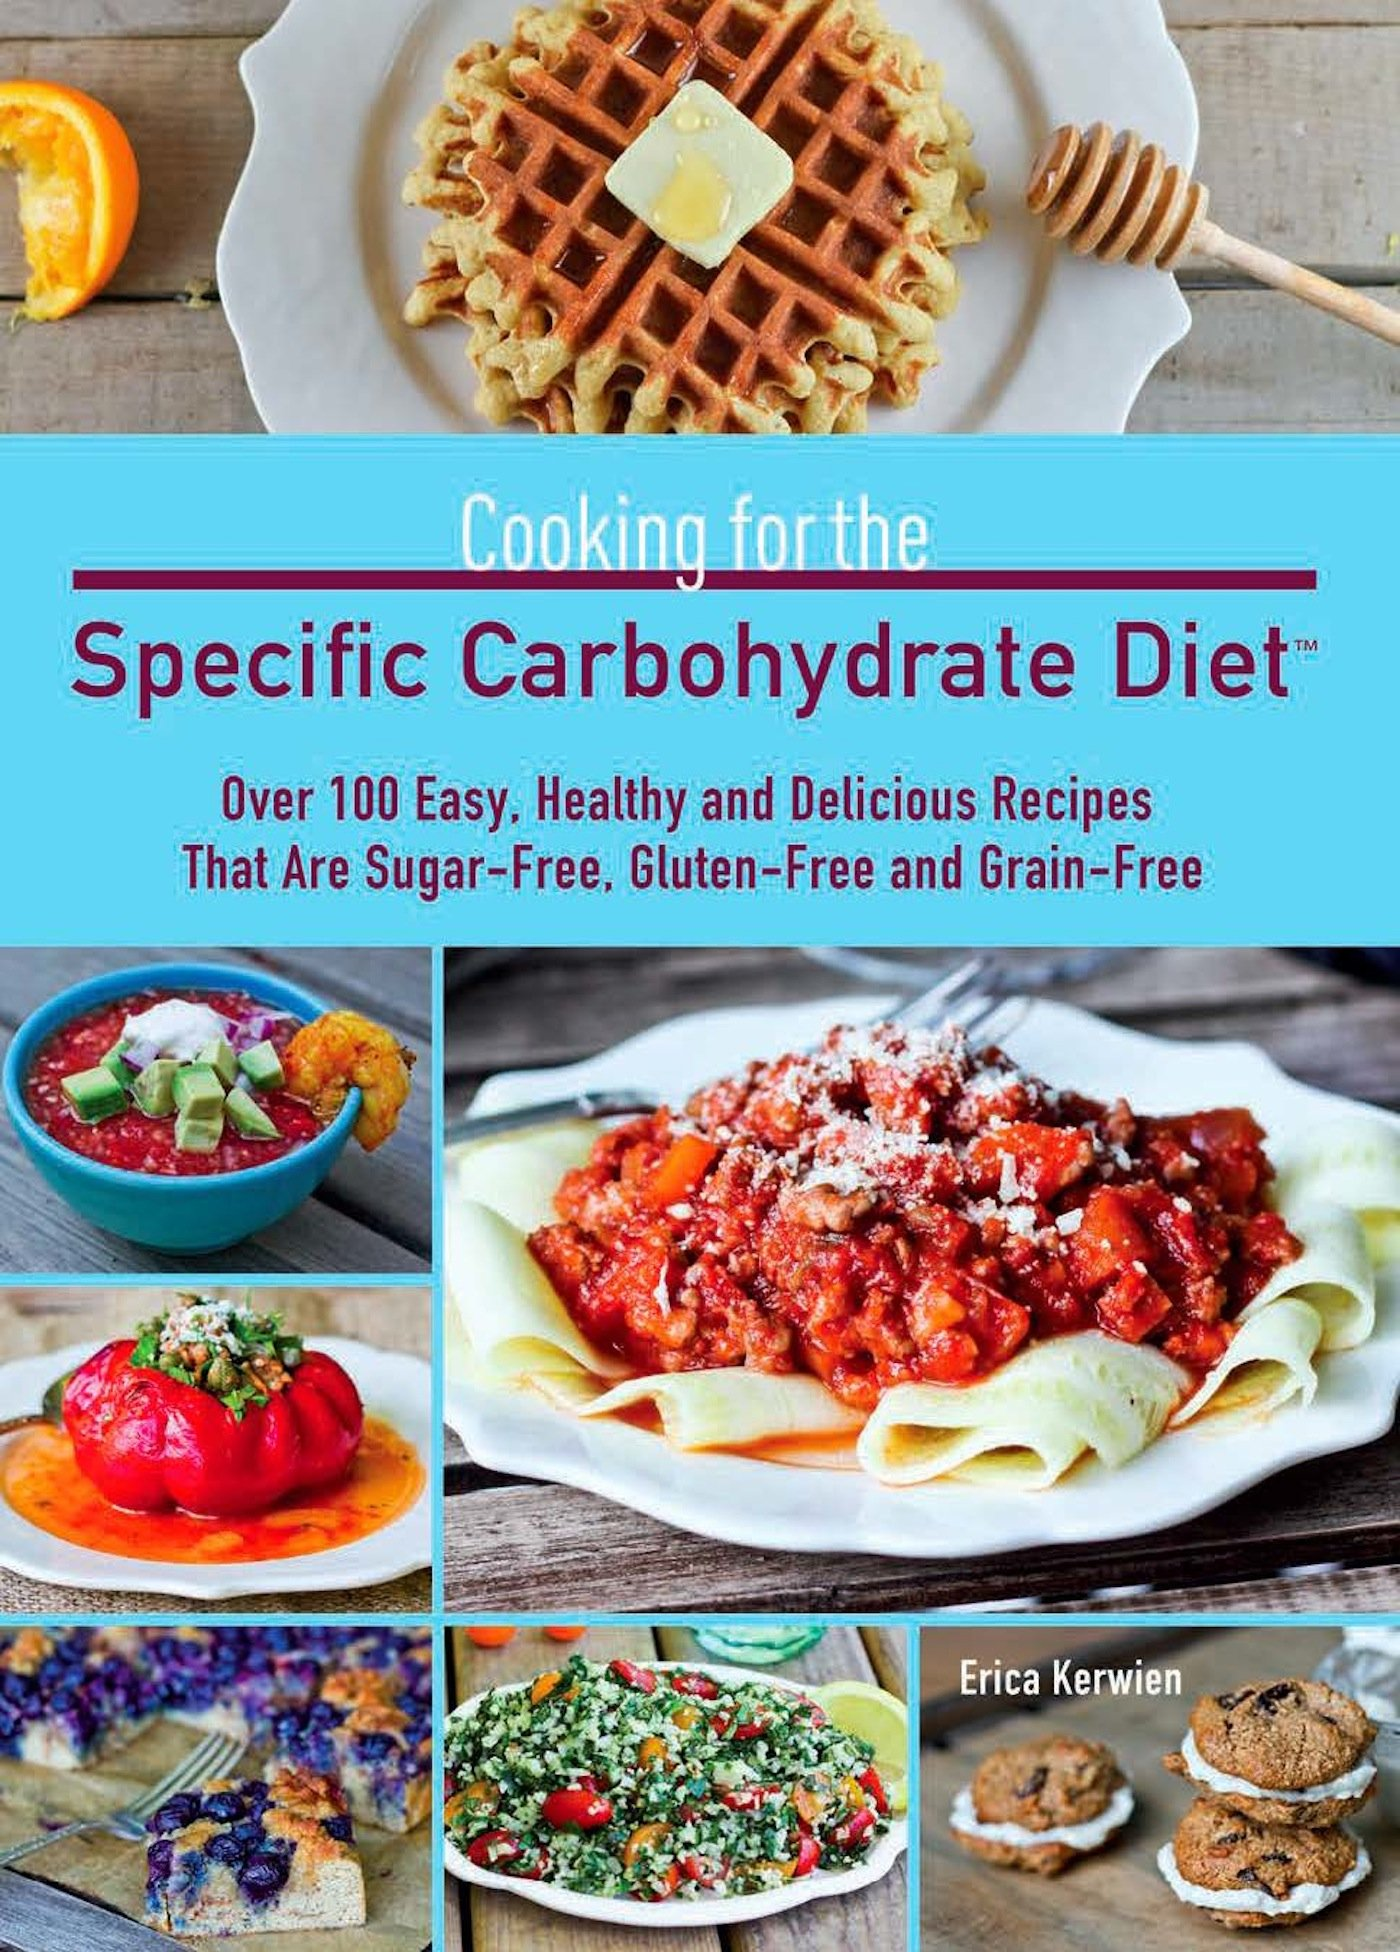 Download Cooking for the Specific Carbohydrate Diet: Over 100 Easy, Healthy, and Delicious Recipes that are Sugar-Free, Gluten-Free, and Grain-Free ebook